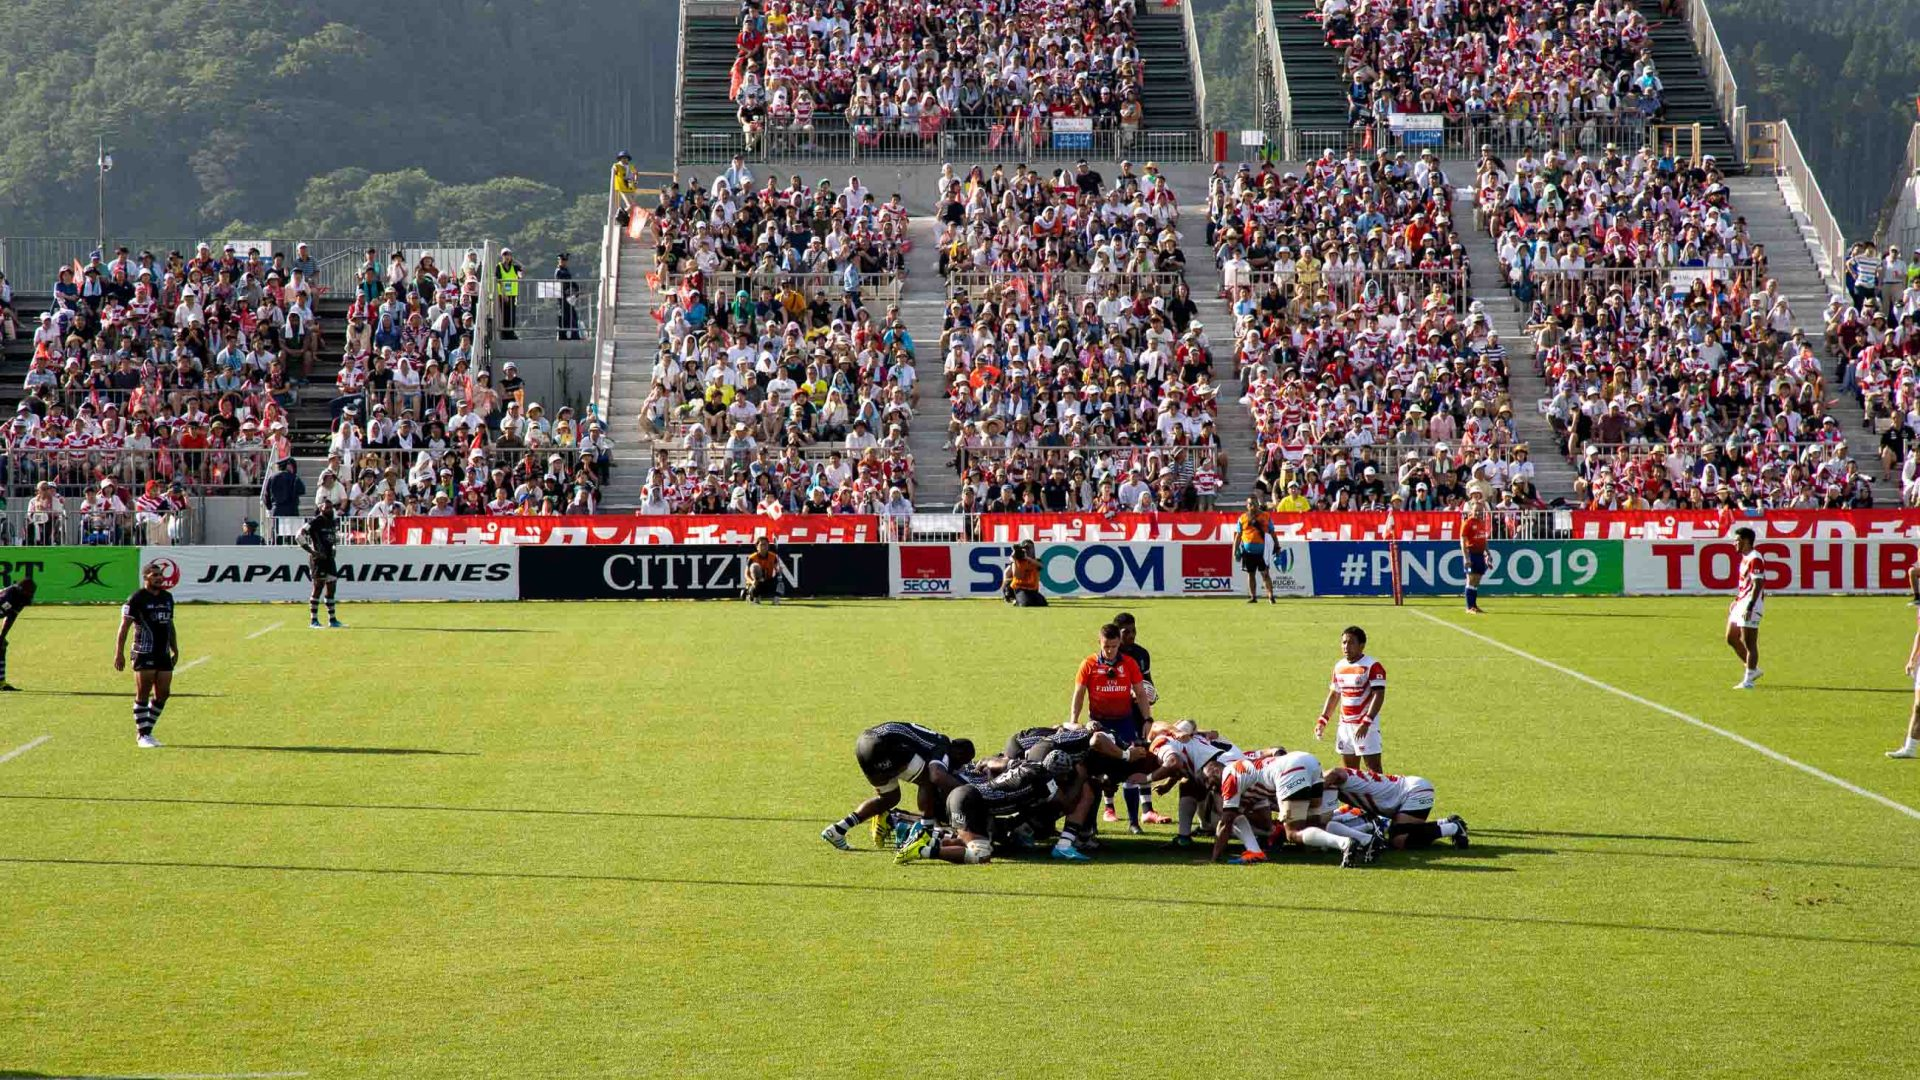 Players compete during the first international match at the Kamaishi Memorial Recovery Stadium, between Japan and Fiji.